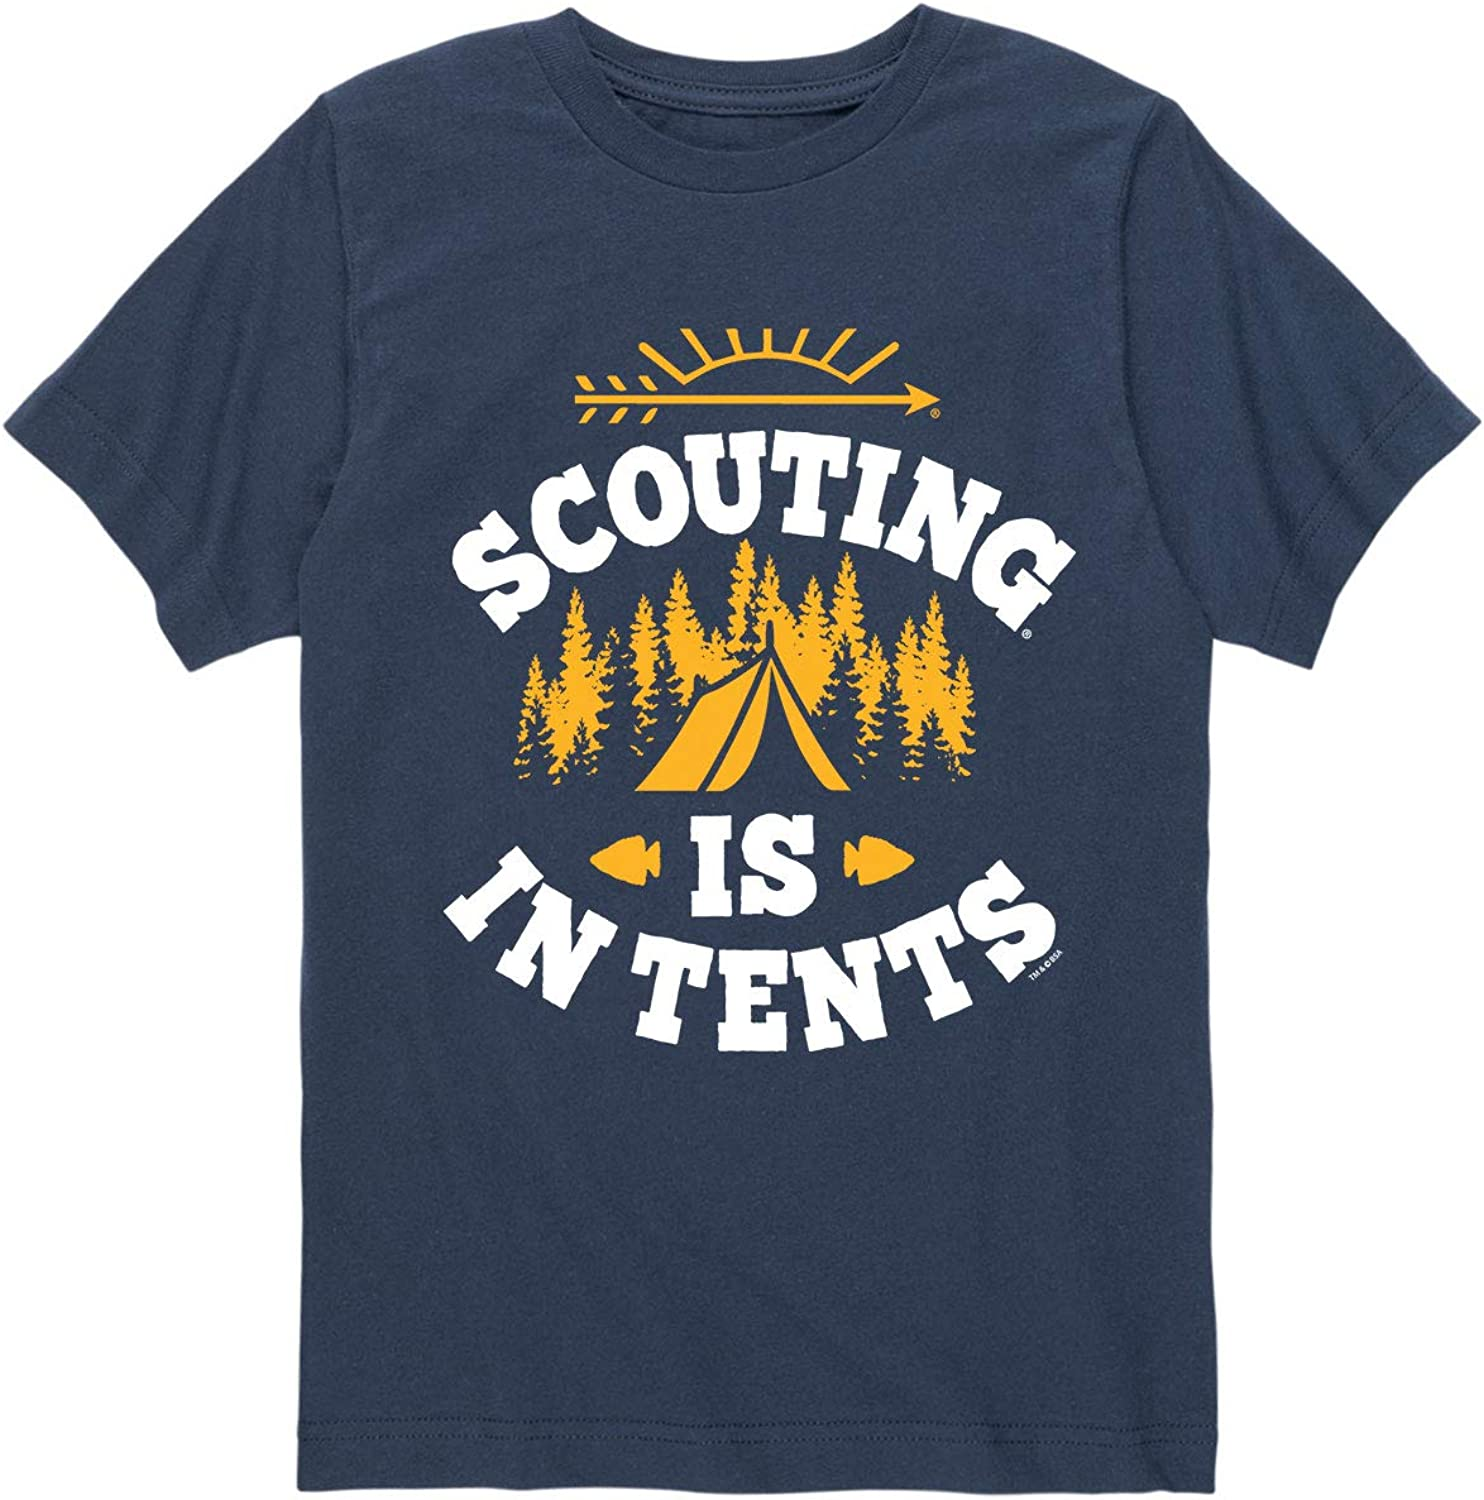 Boy Scouts of America Scouting is in Tents - Youth Short Sleeve Graphic T-Shirt